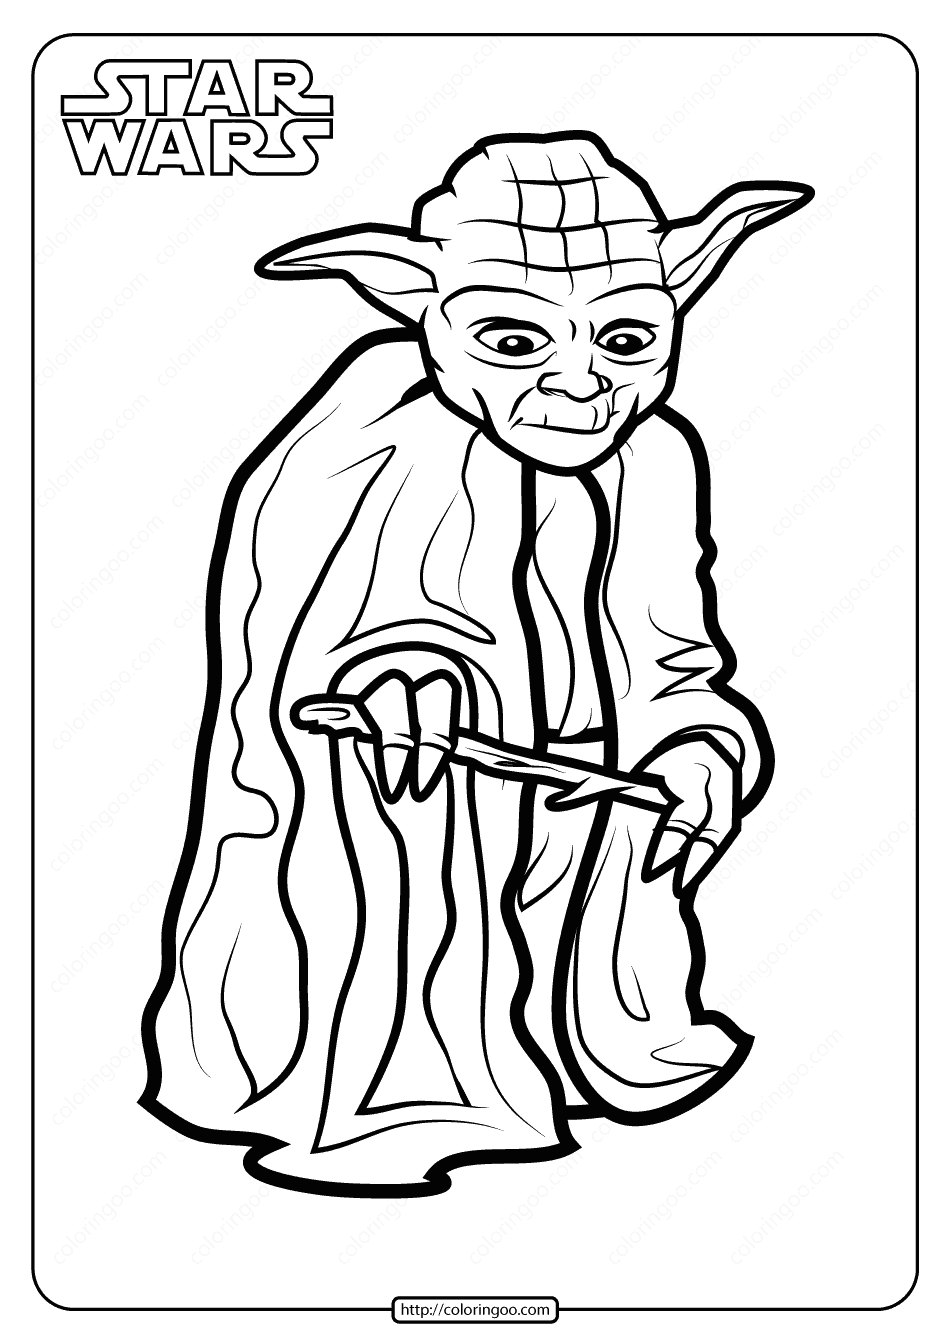 Printable Star Wars Yoda Coloring Pages Book. High quality ...